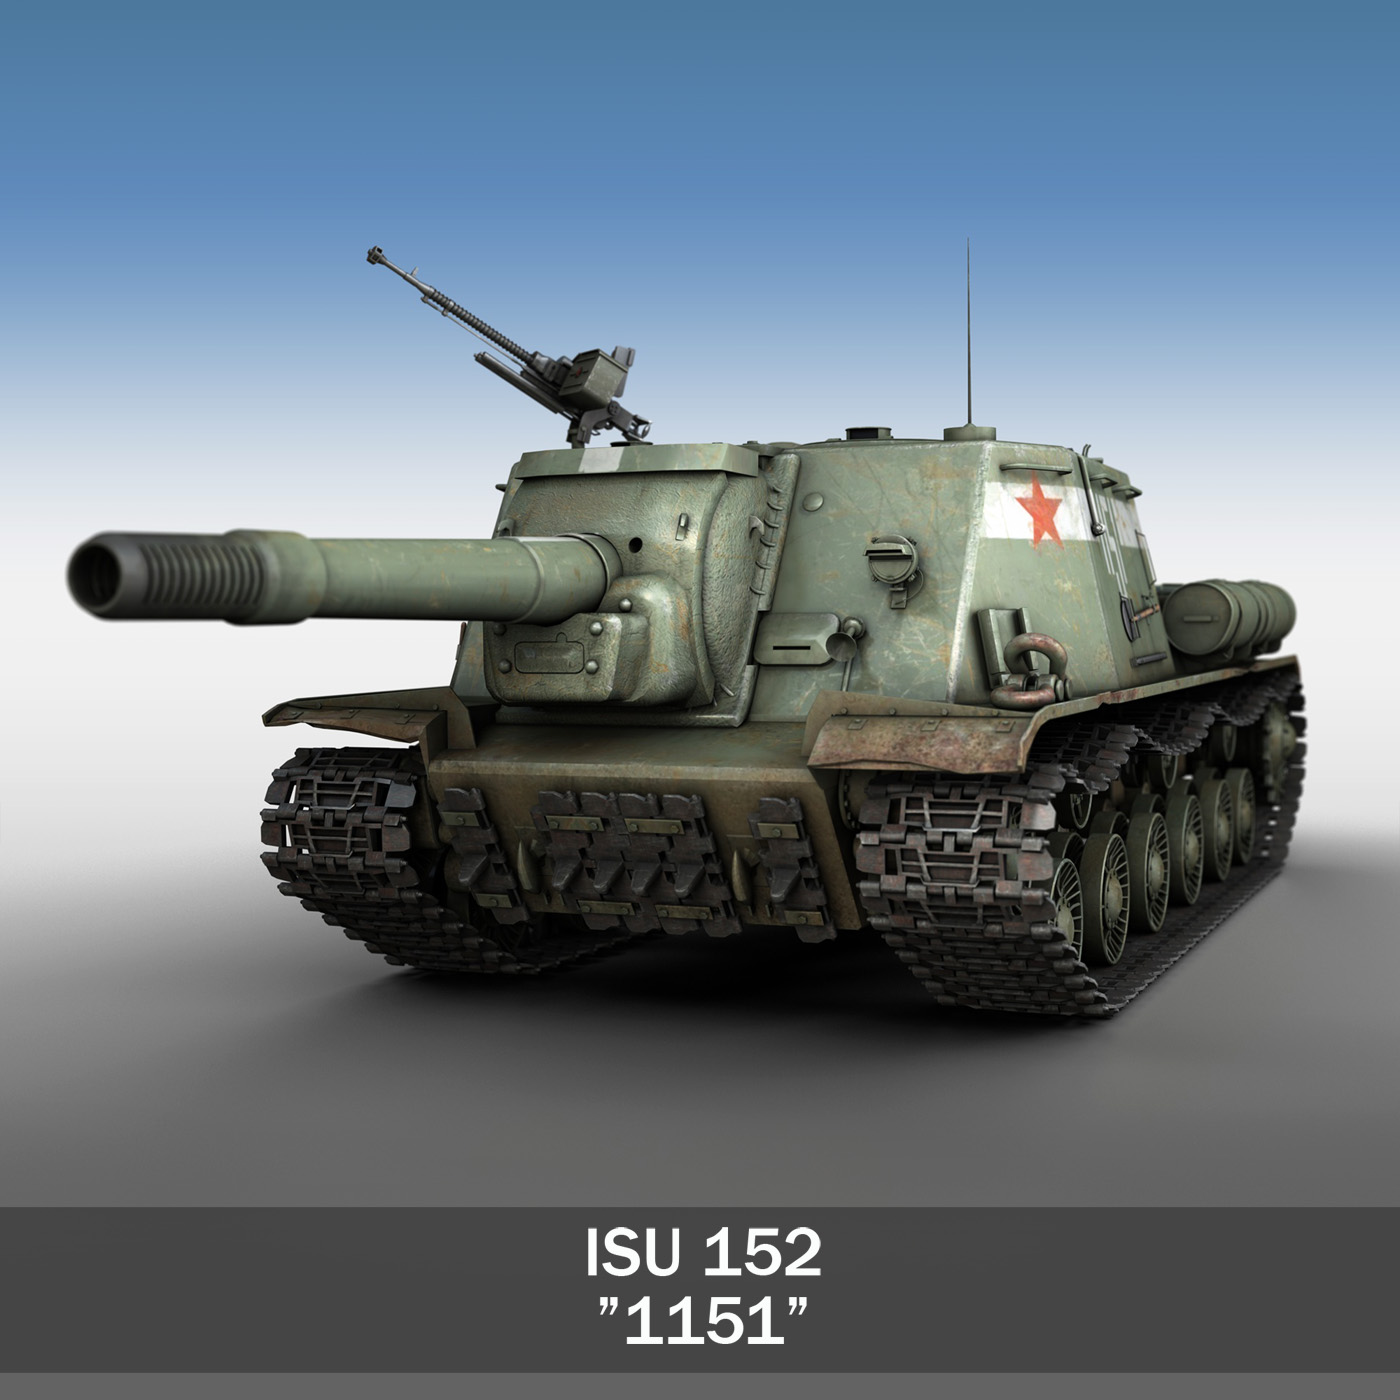 isu 152 soviet heavy self propelled gun 3d model 3ds fbx c4d lwo obj 187525